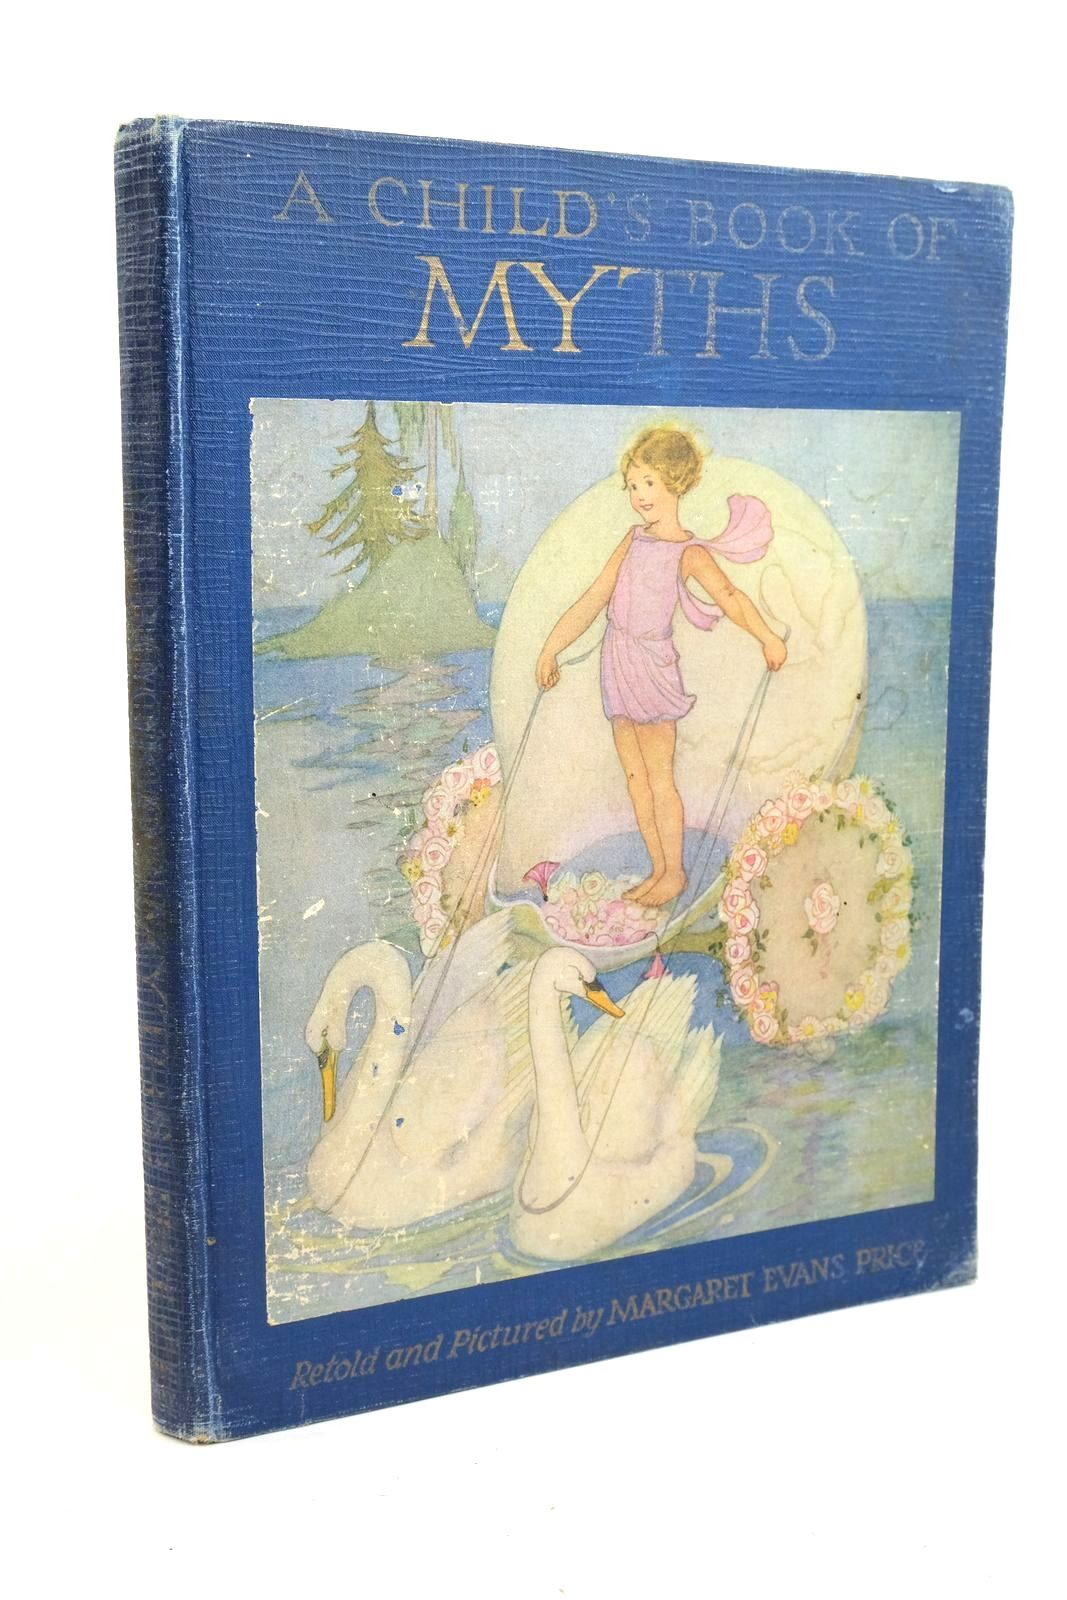 Photo of A CHILD'S BOOK OF MYTHS written by Price, Margaret Evans Bates, Katharine Lee illustrated by Price, Margaret Evans published by Rand McNally & Company (STOCK CODE: 1321162)  for sale by Stella & Rose's Books